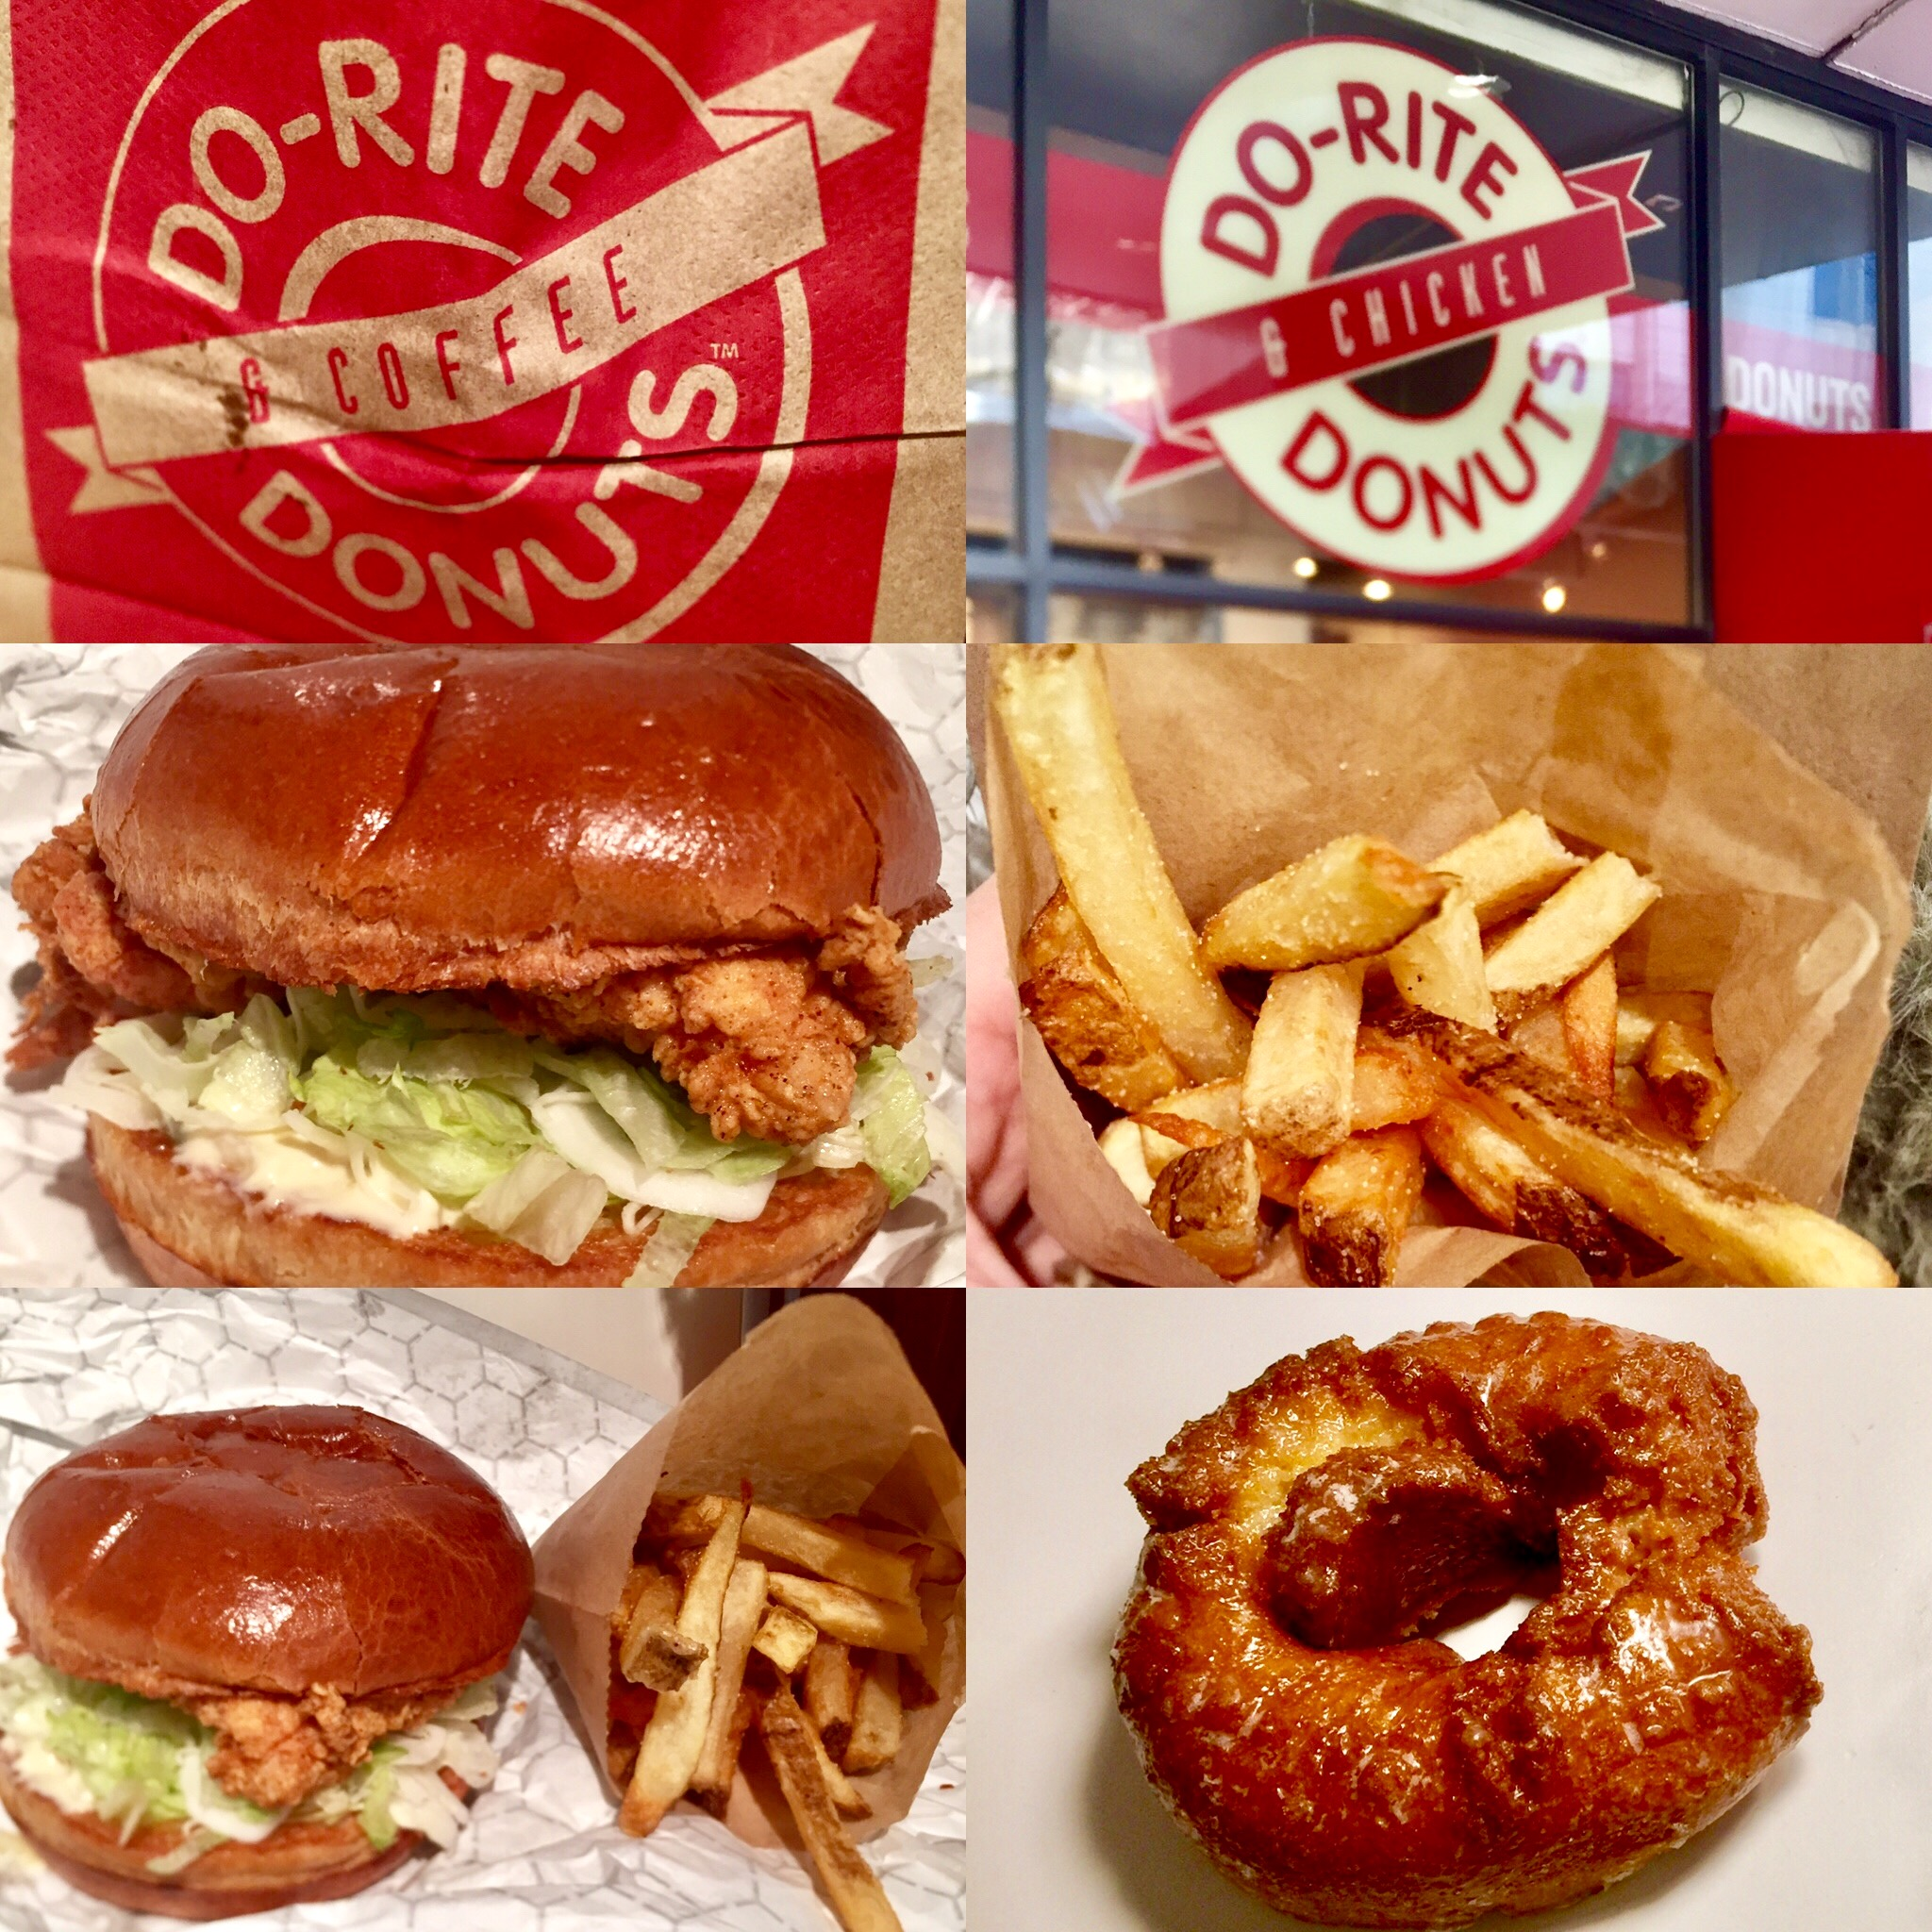 Do-Rite Donuts.  Donuts, done right!